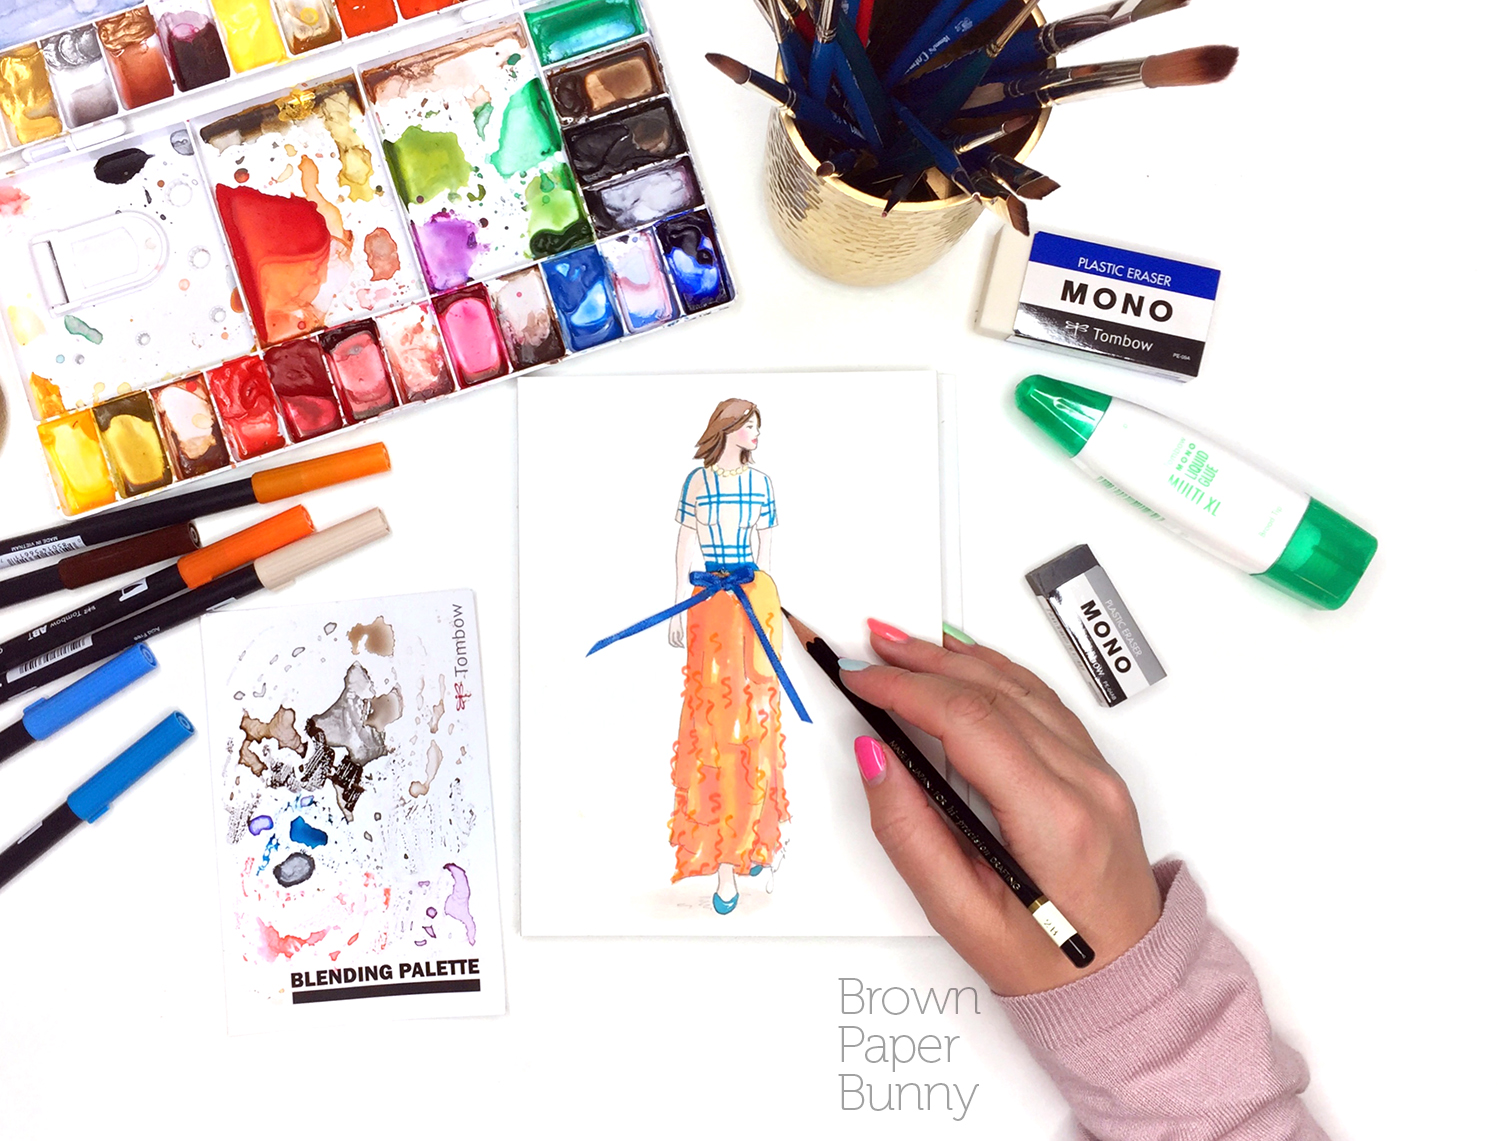 Fashion illustration created for Fashion Week campaign with Tombow.